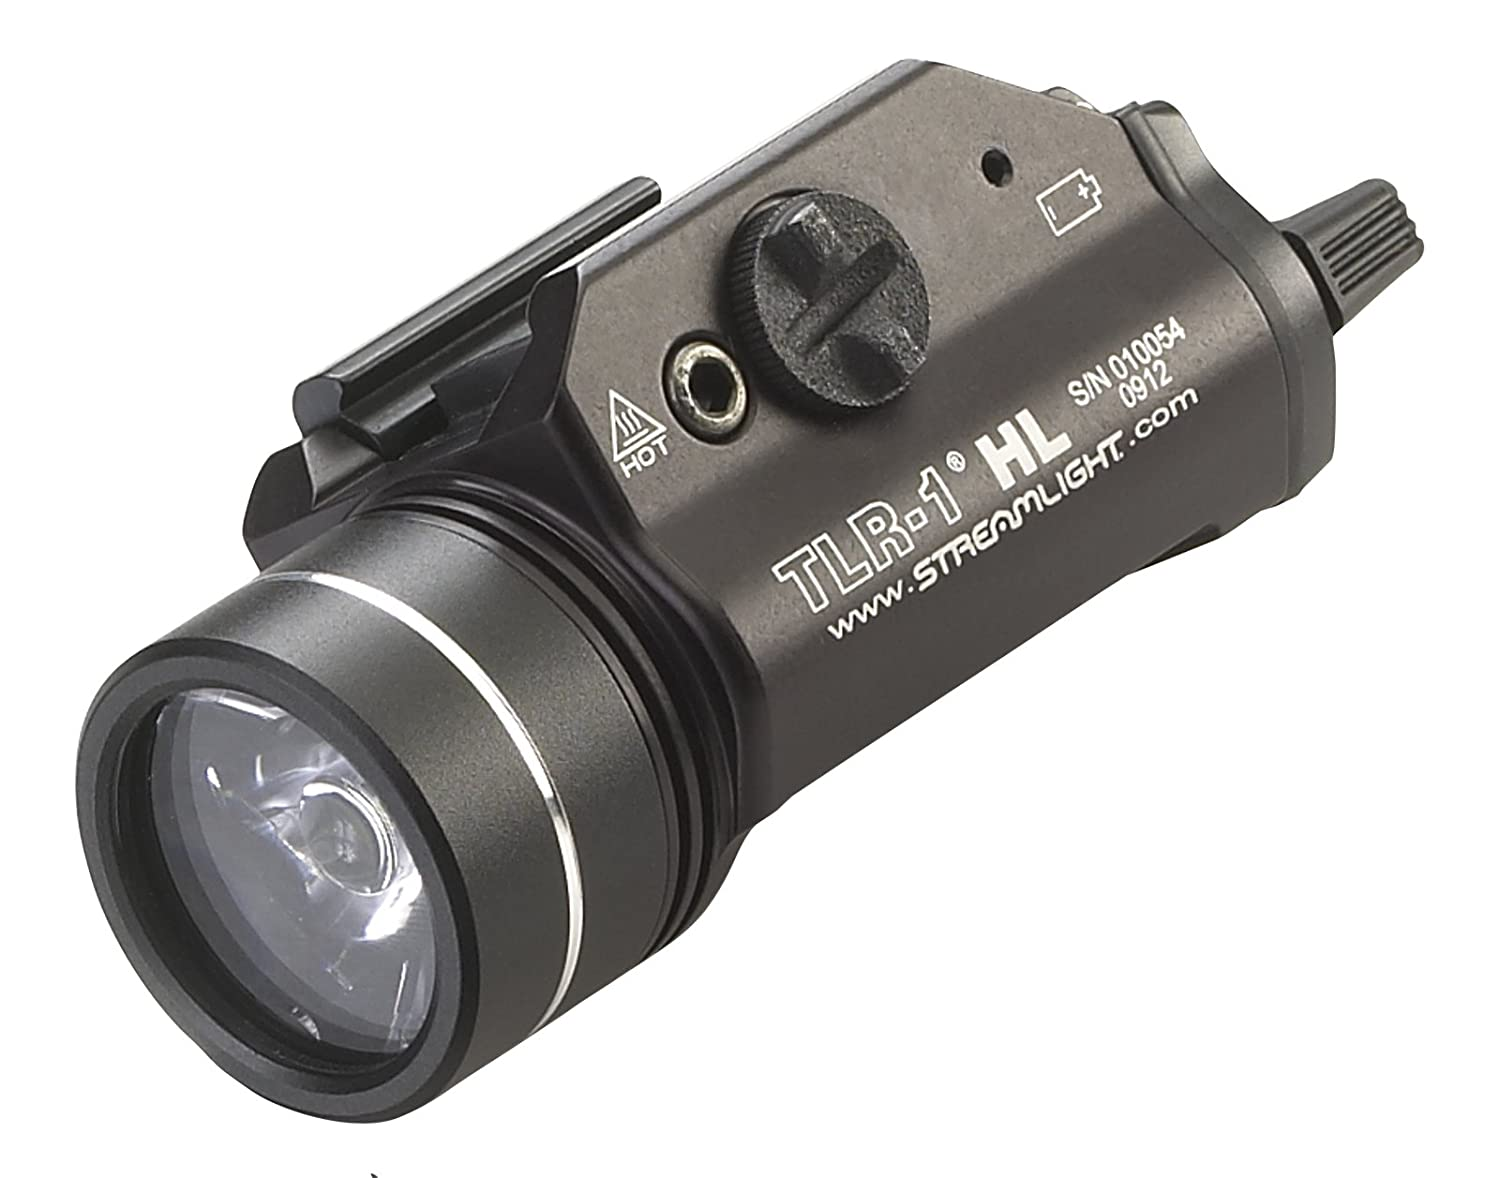 Streamlight 69260 TLR-1 HL 630 Lumen Rail-Mounted Tactical Light